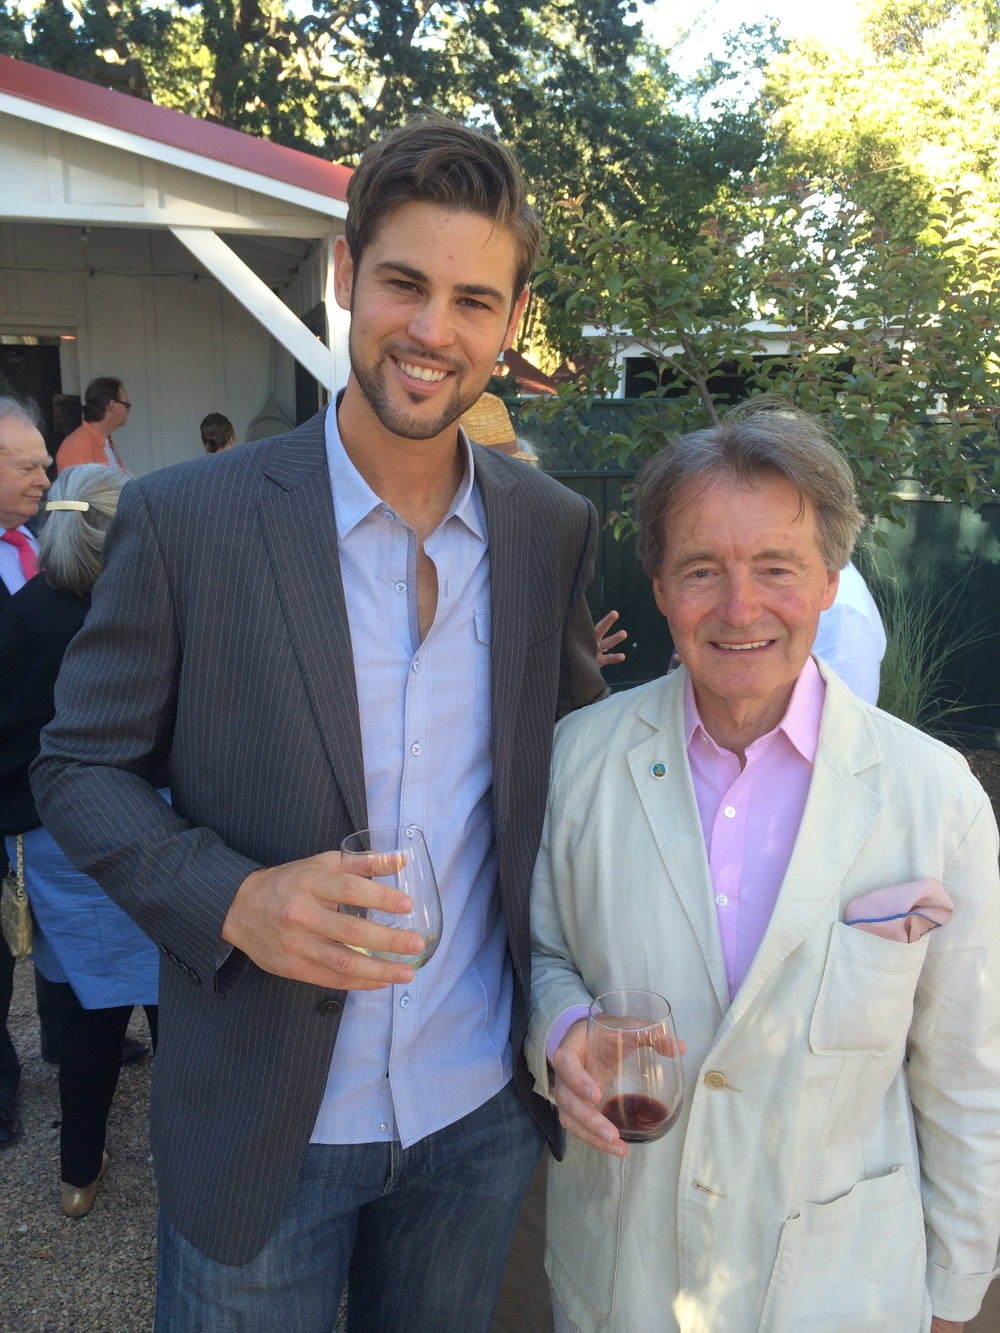 Matt with iconic wine ambassador steven spurrier in los olivos in 2014 (Reference the movie Bottle shock to learn more about Steven's contribution to the world wine industry).